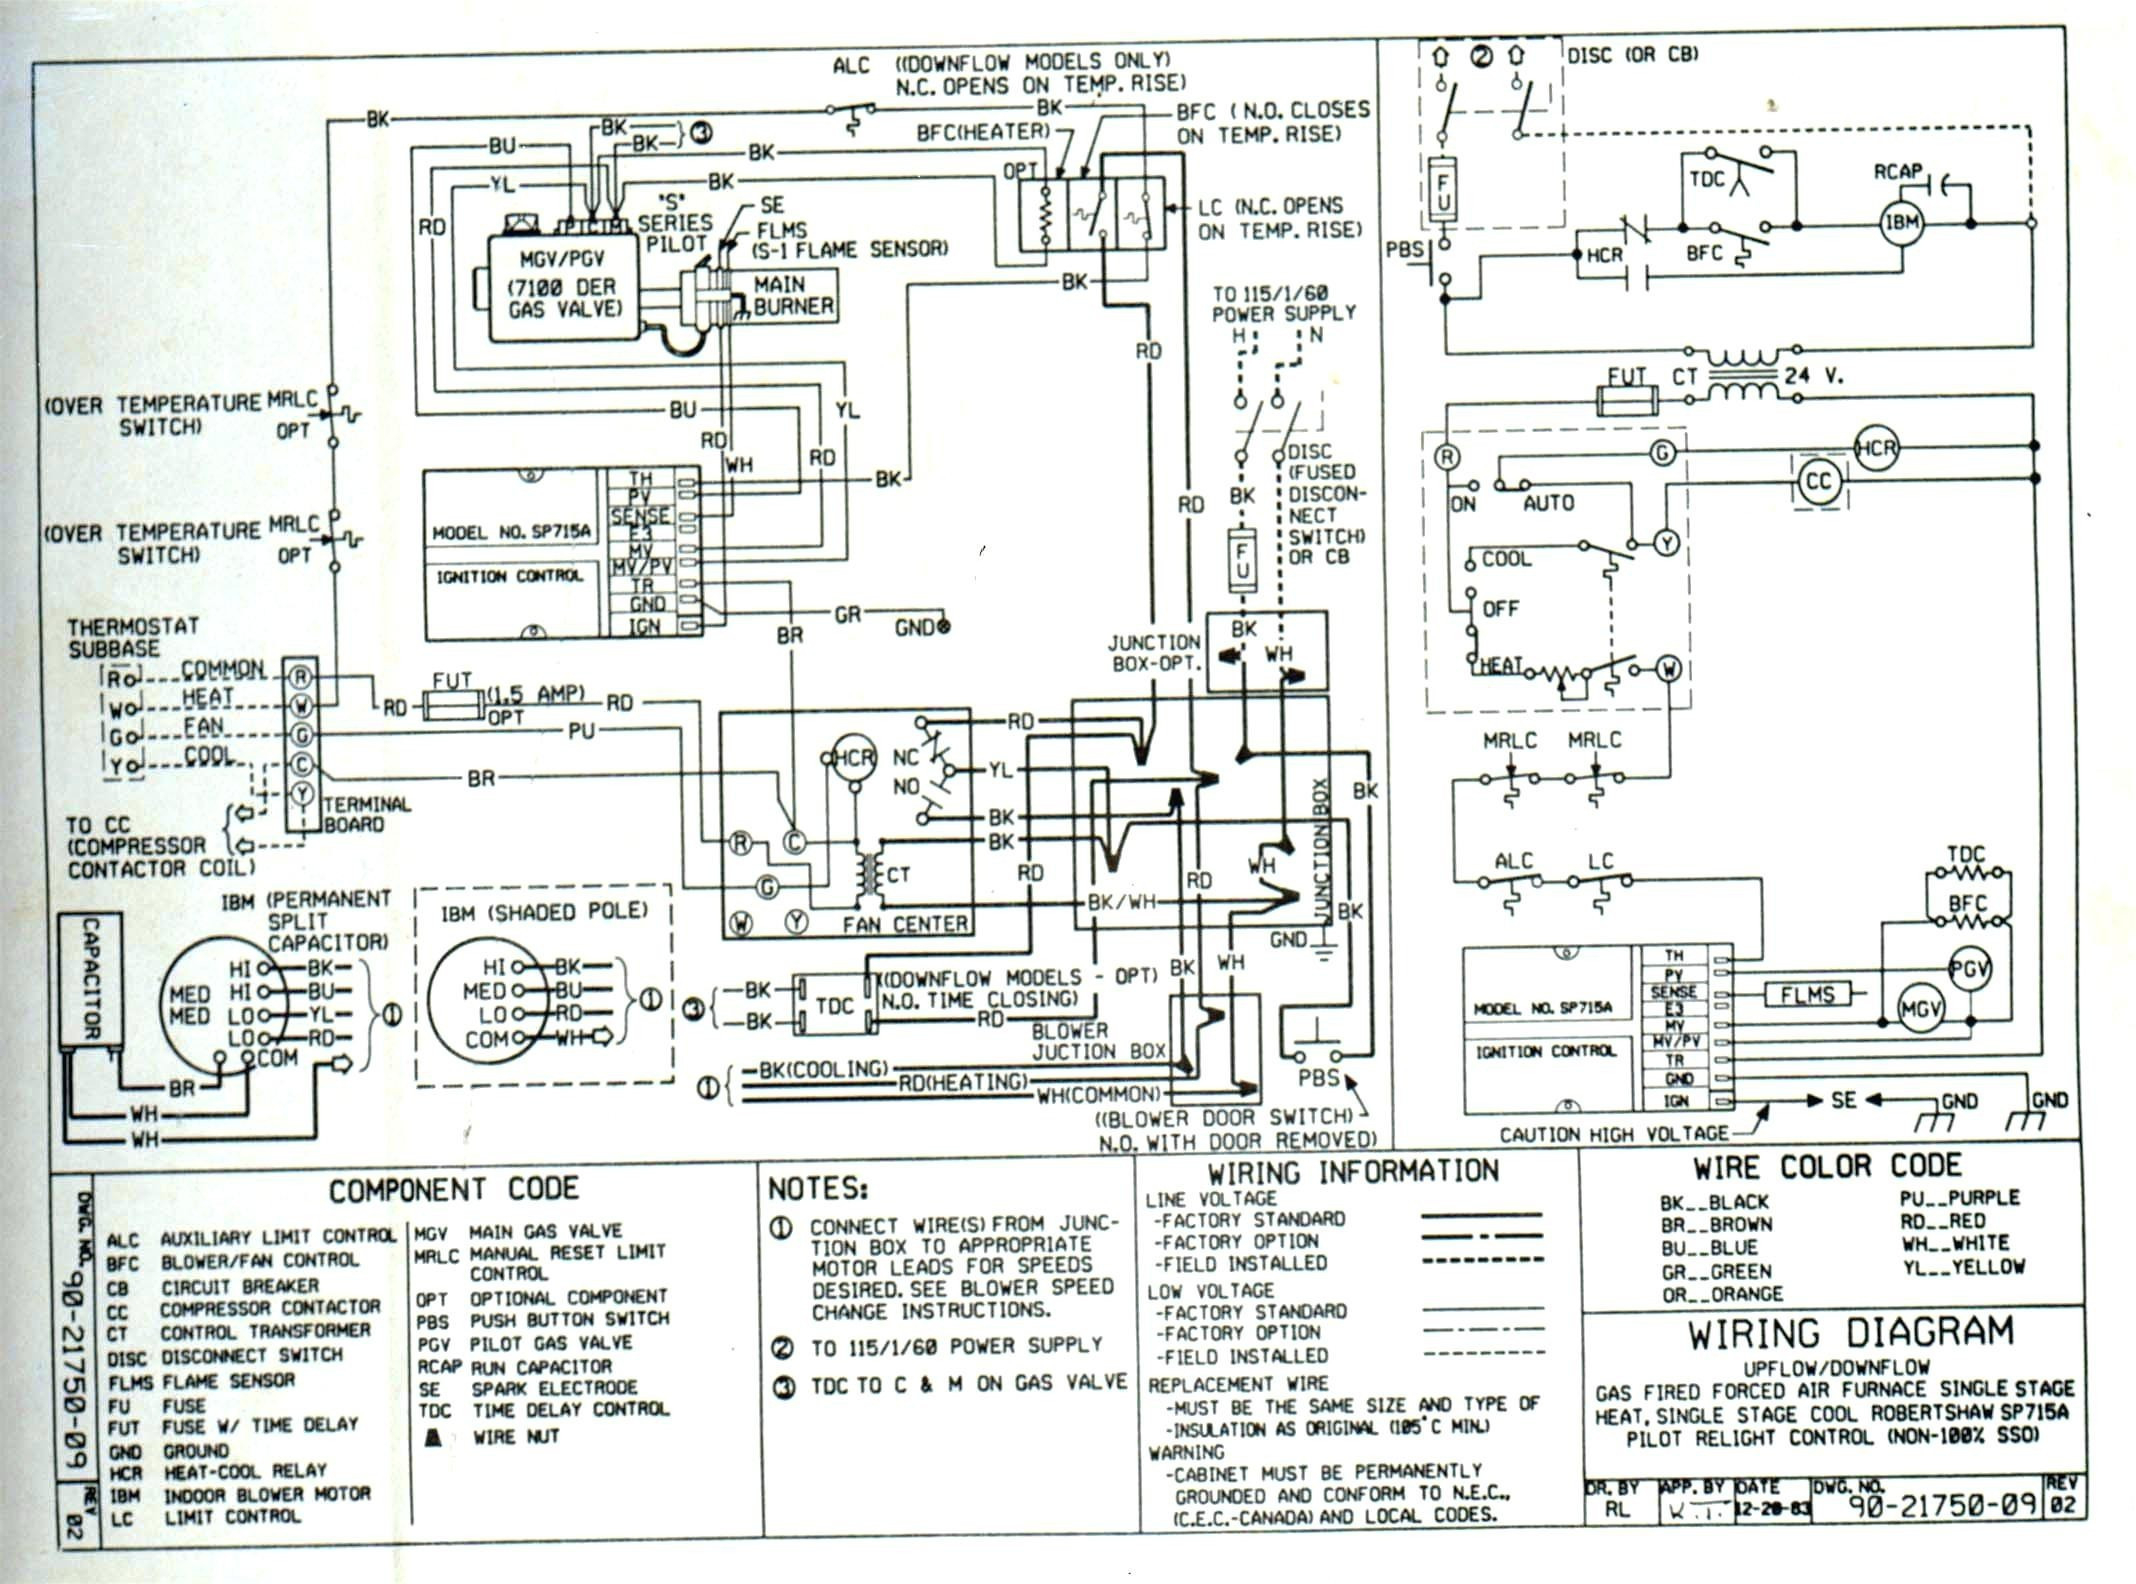 trane package unit wiring diagram Download-Wiring Diagram For S Plan 2017 Wiring Diagram For S Plan Plus Fresh Trane Ac Wiring Diagram Gallery 17-b